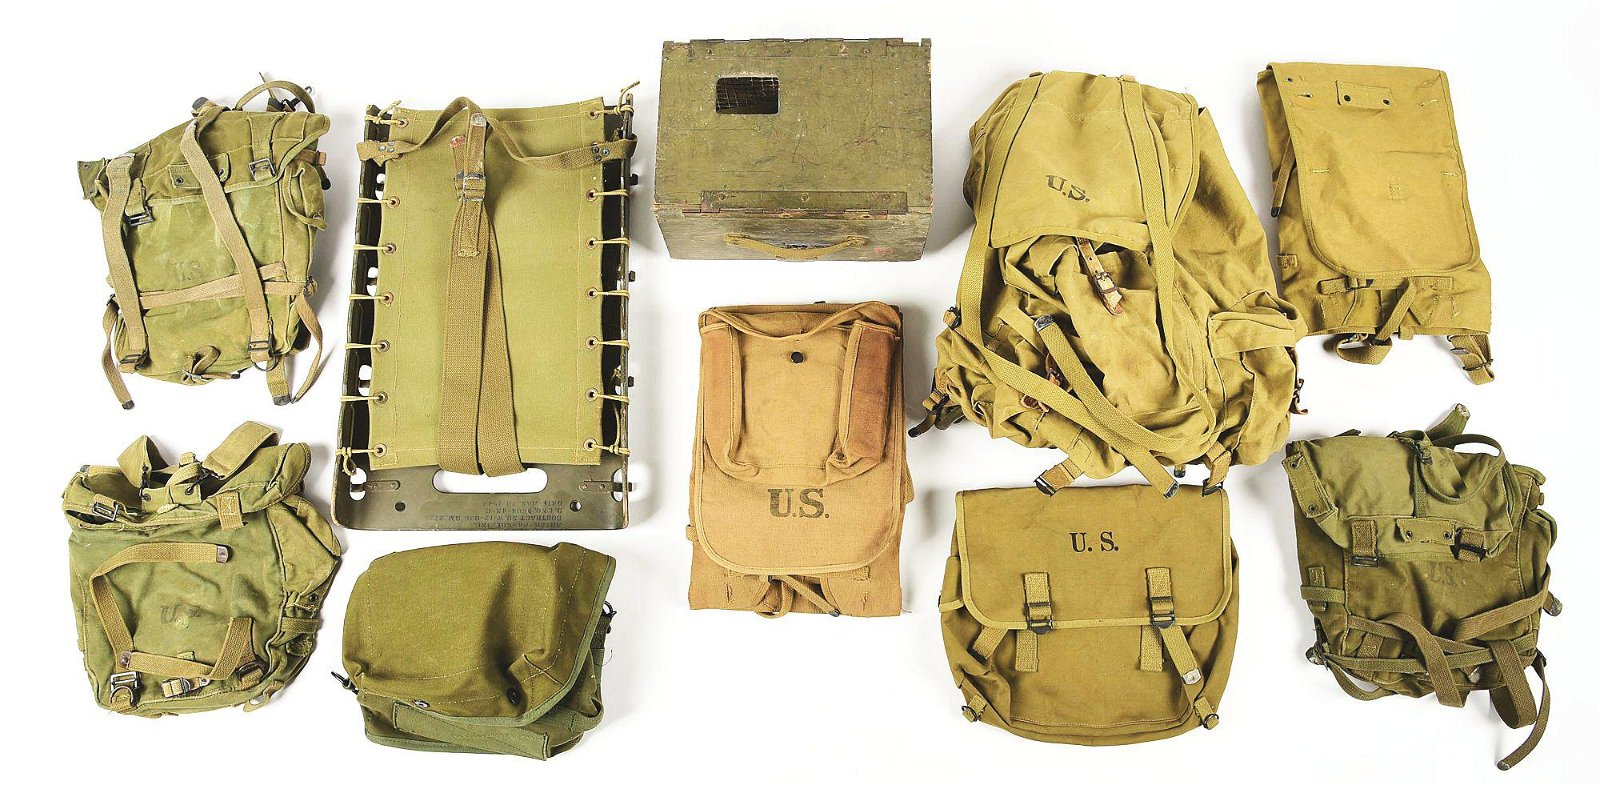 LOT OF US MILITARY FIELD GEAR AND EQUIPMENT.